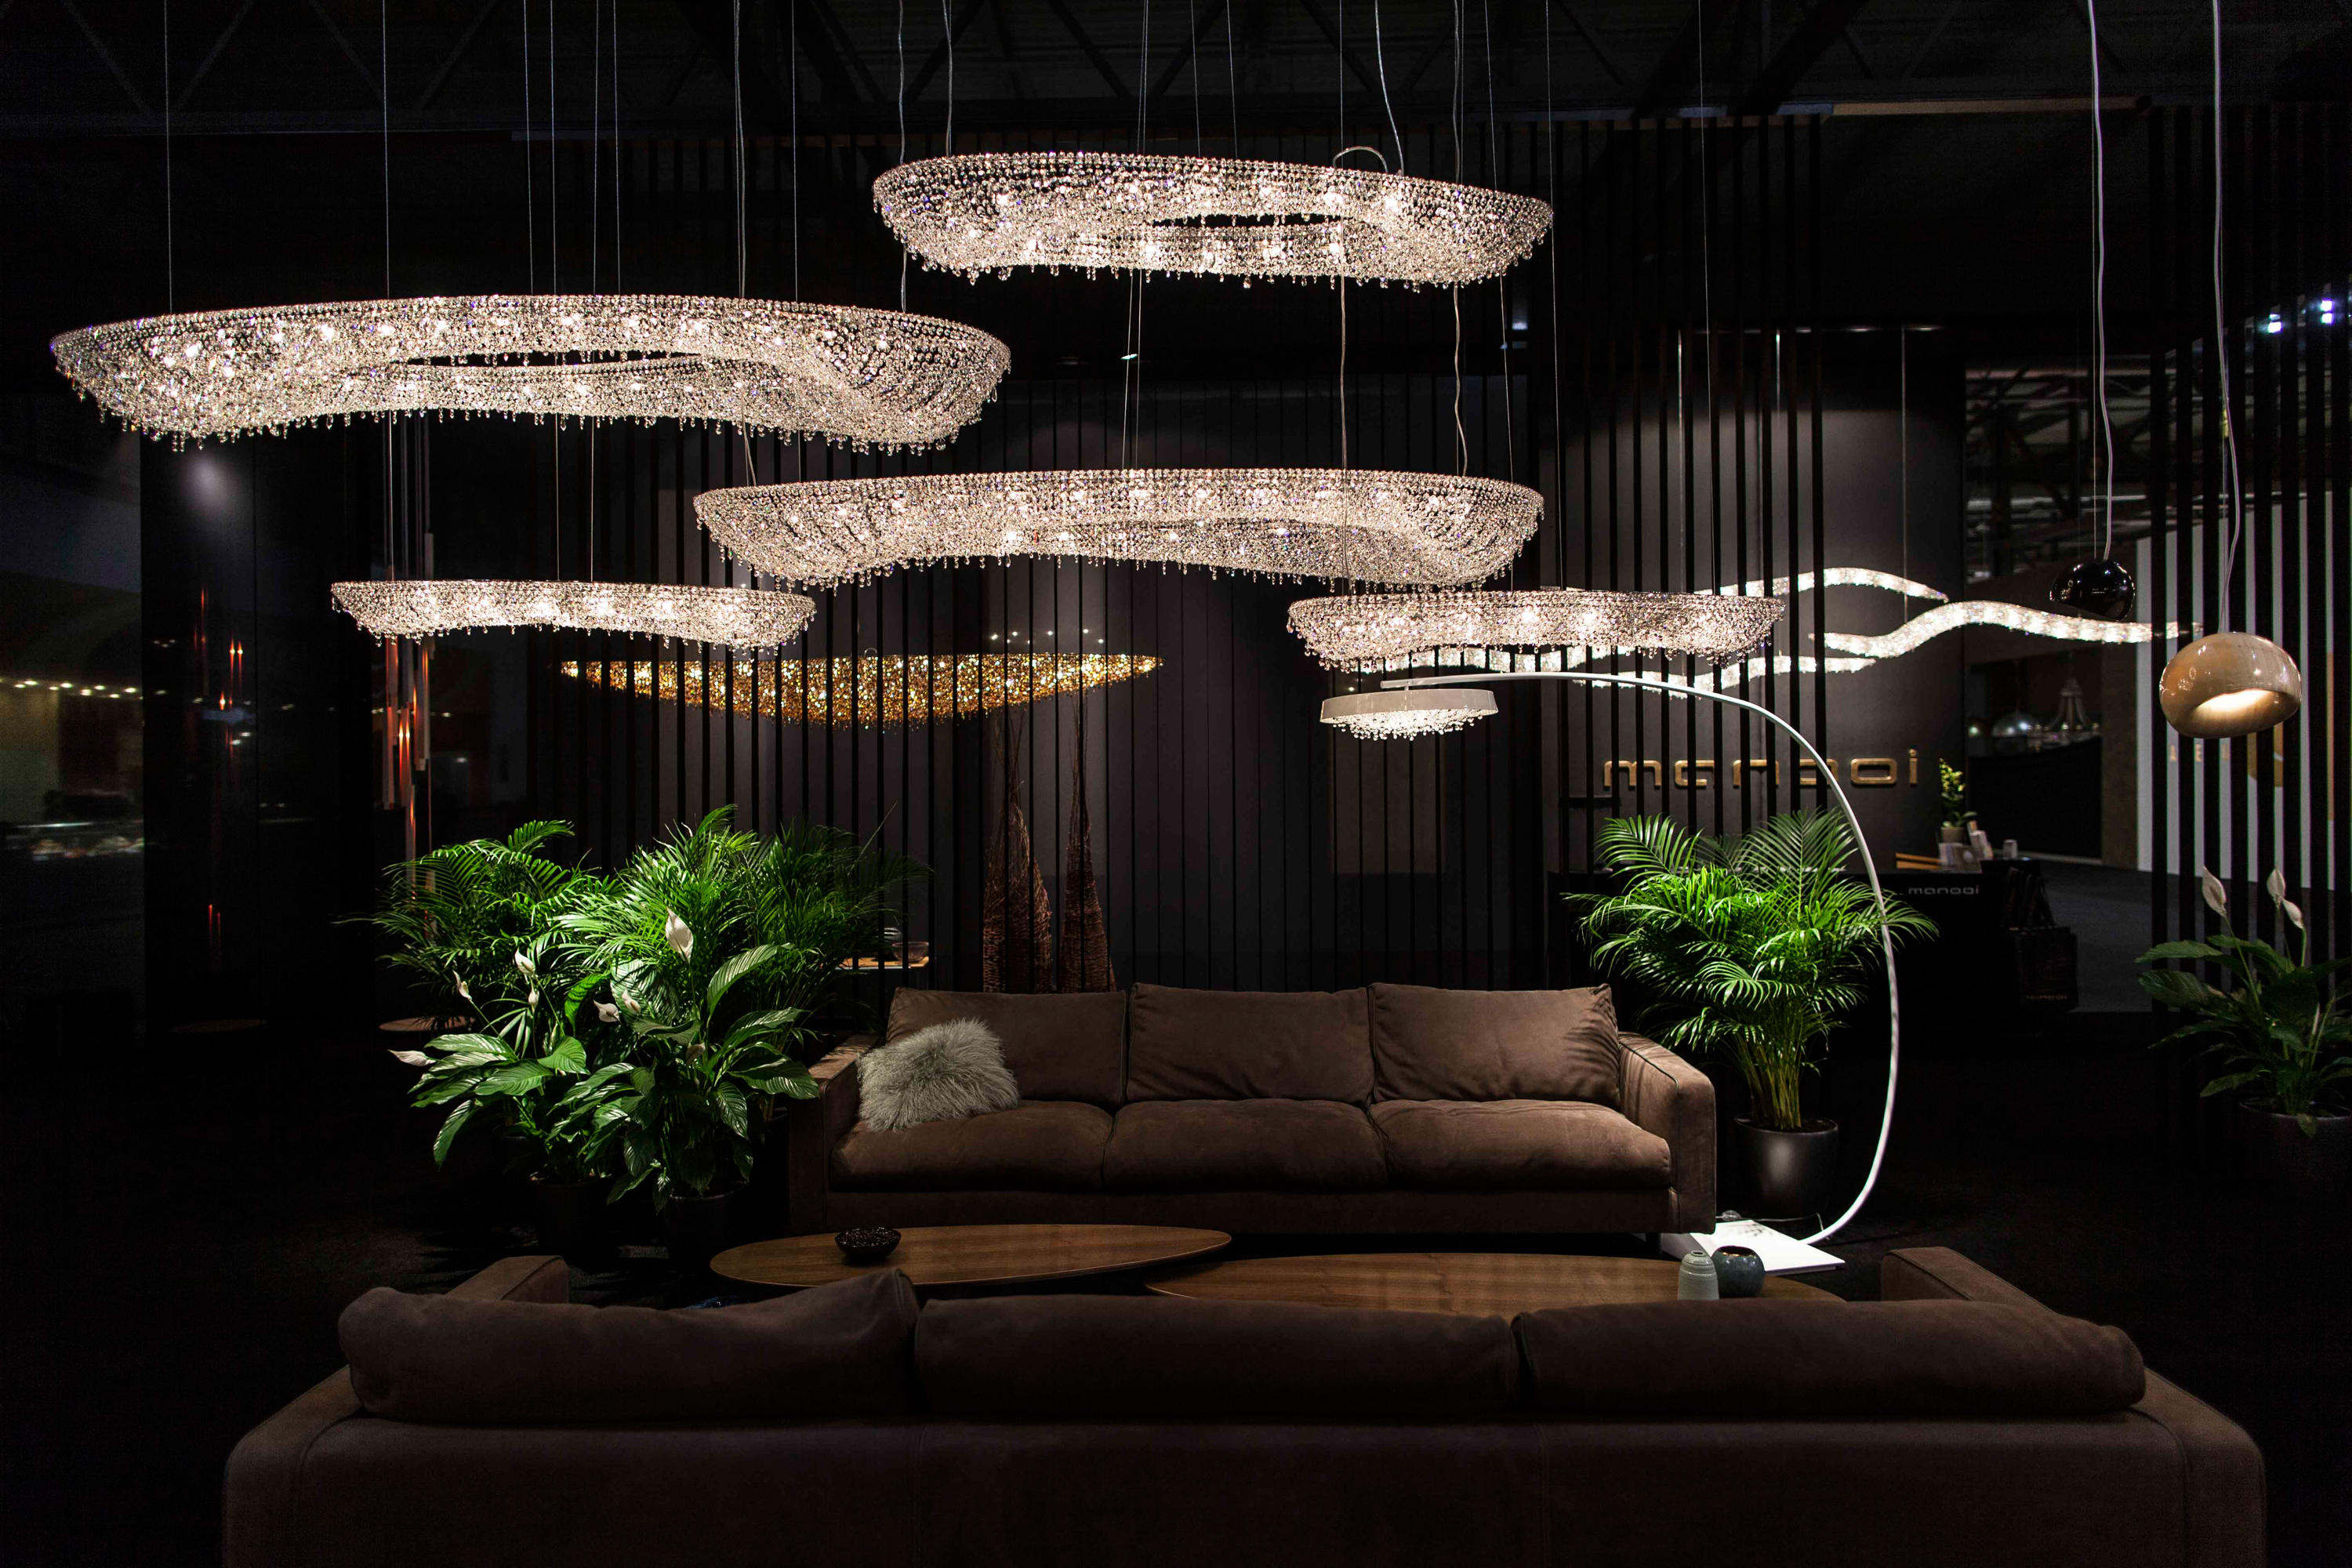 ARTICA Ceiling suspended chandeliers from Manooi Architonic